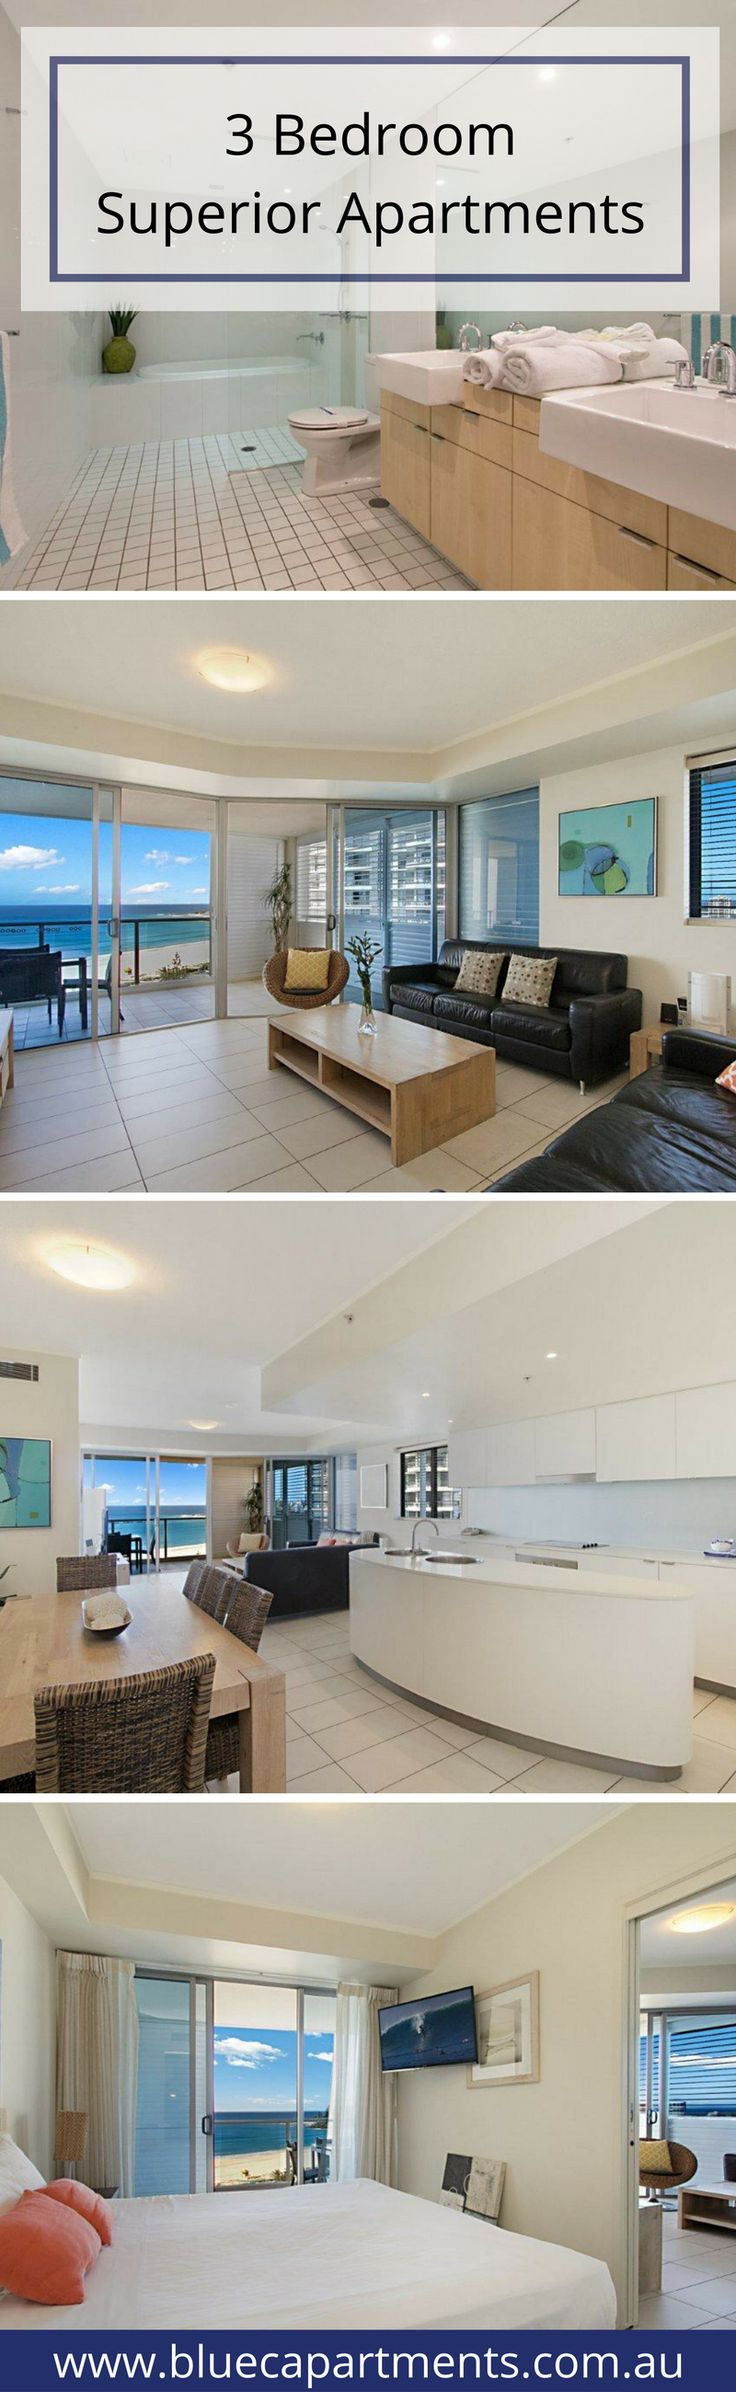 Our 3 bedroom apartments are the perfect home away from home allowing you to surround yourself and relax in the comfort and style our modern design presents and befitting the first class resort facilities we offer. CLICK here for more info http://bluecapartments.com.au/3-bedroom-apartment-coolangatta/ | Blue C Apartments Coolangatta Beach | Australia's Gold Coast & Tweed Valley Accommodations